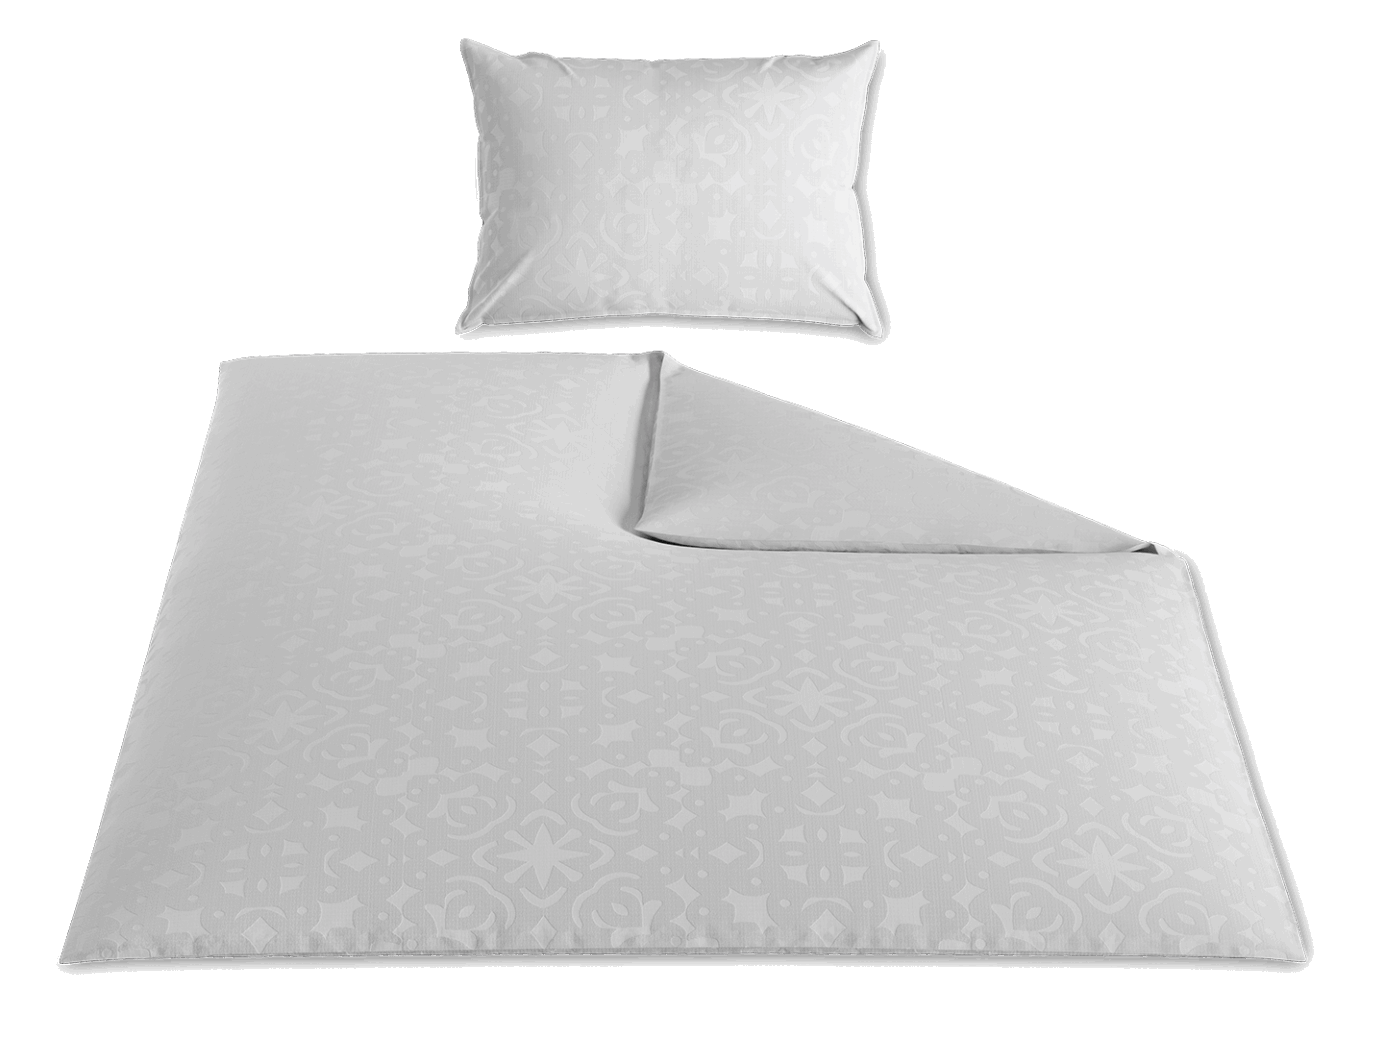 BICO Selection Bettwaesche Silhouette White 1440x1080